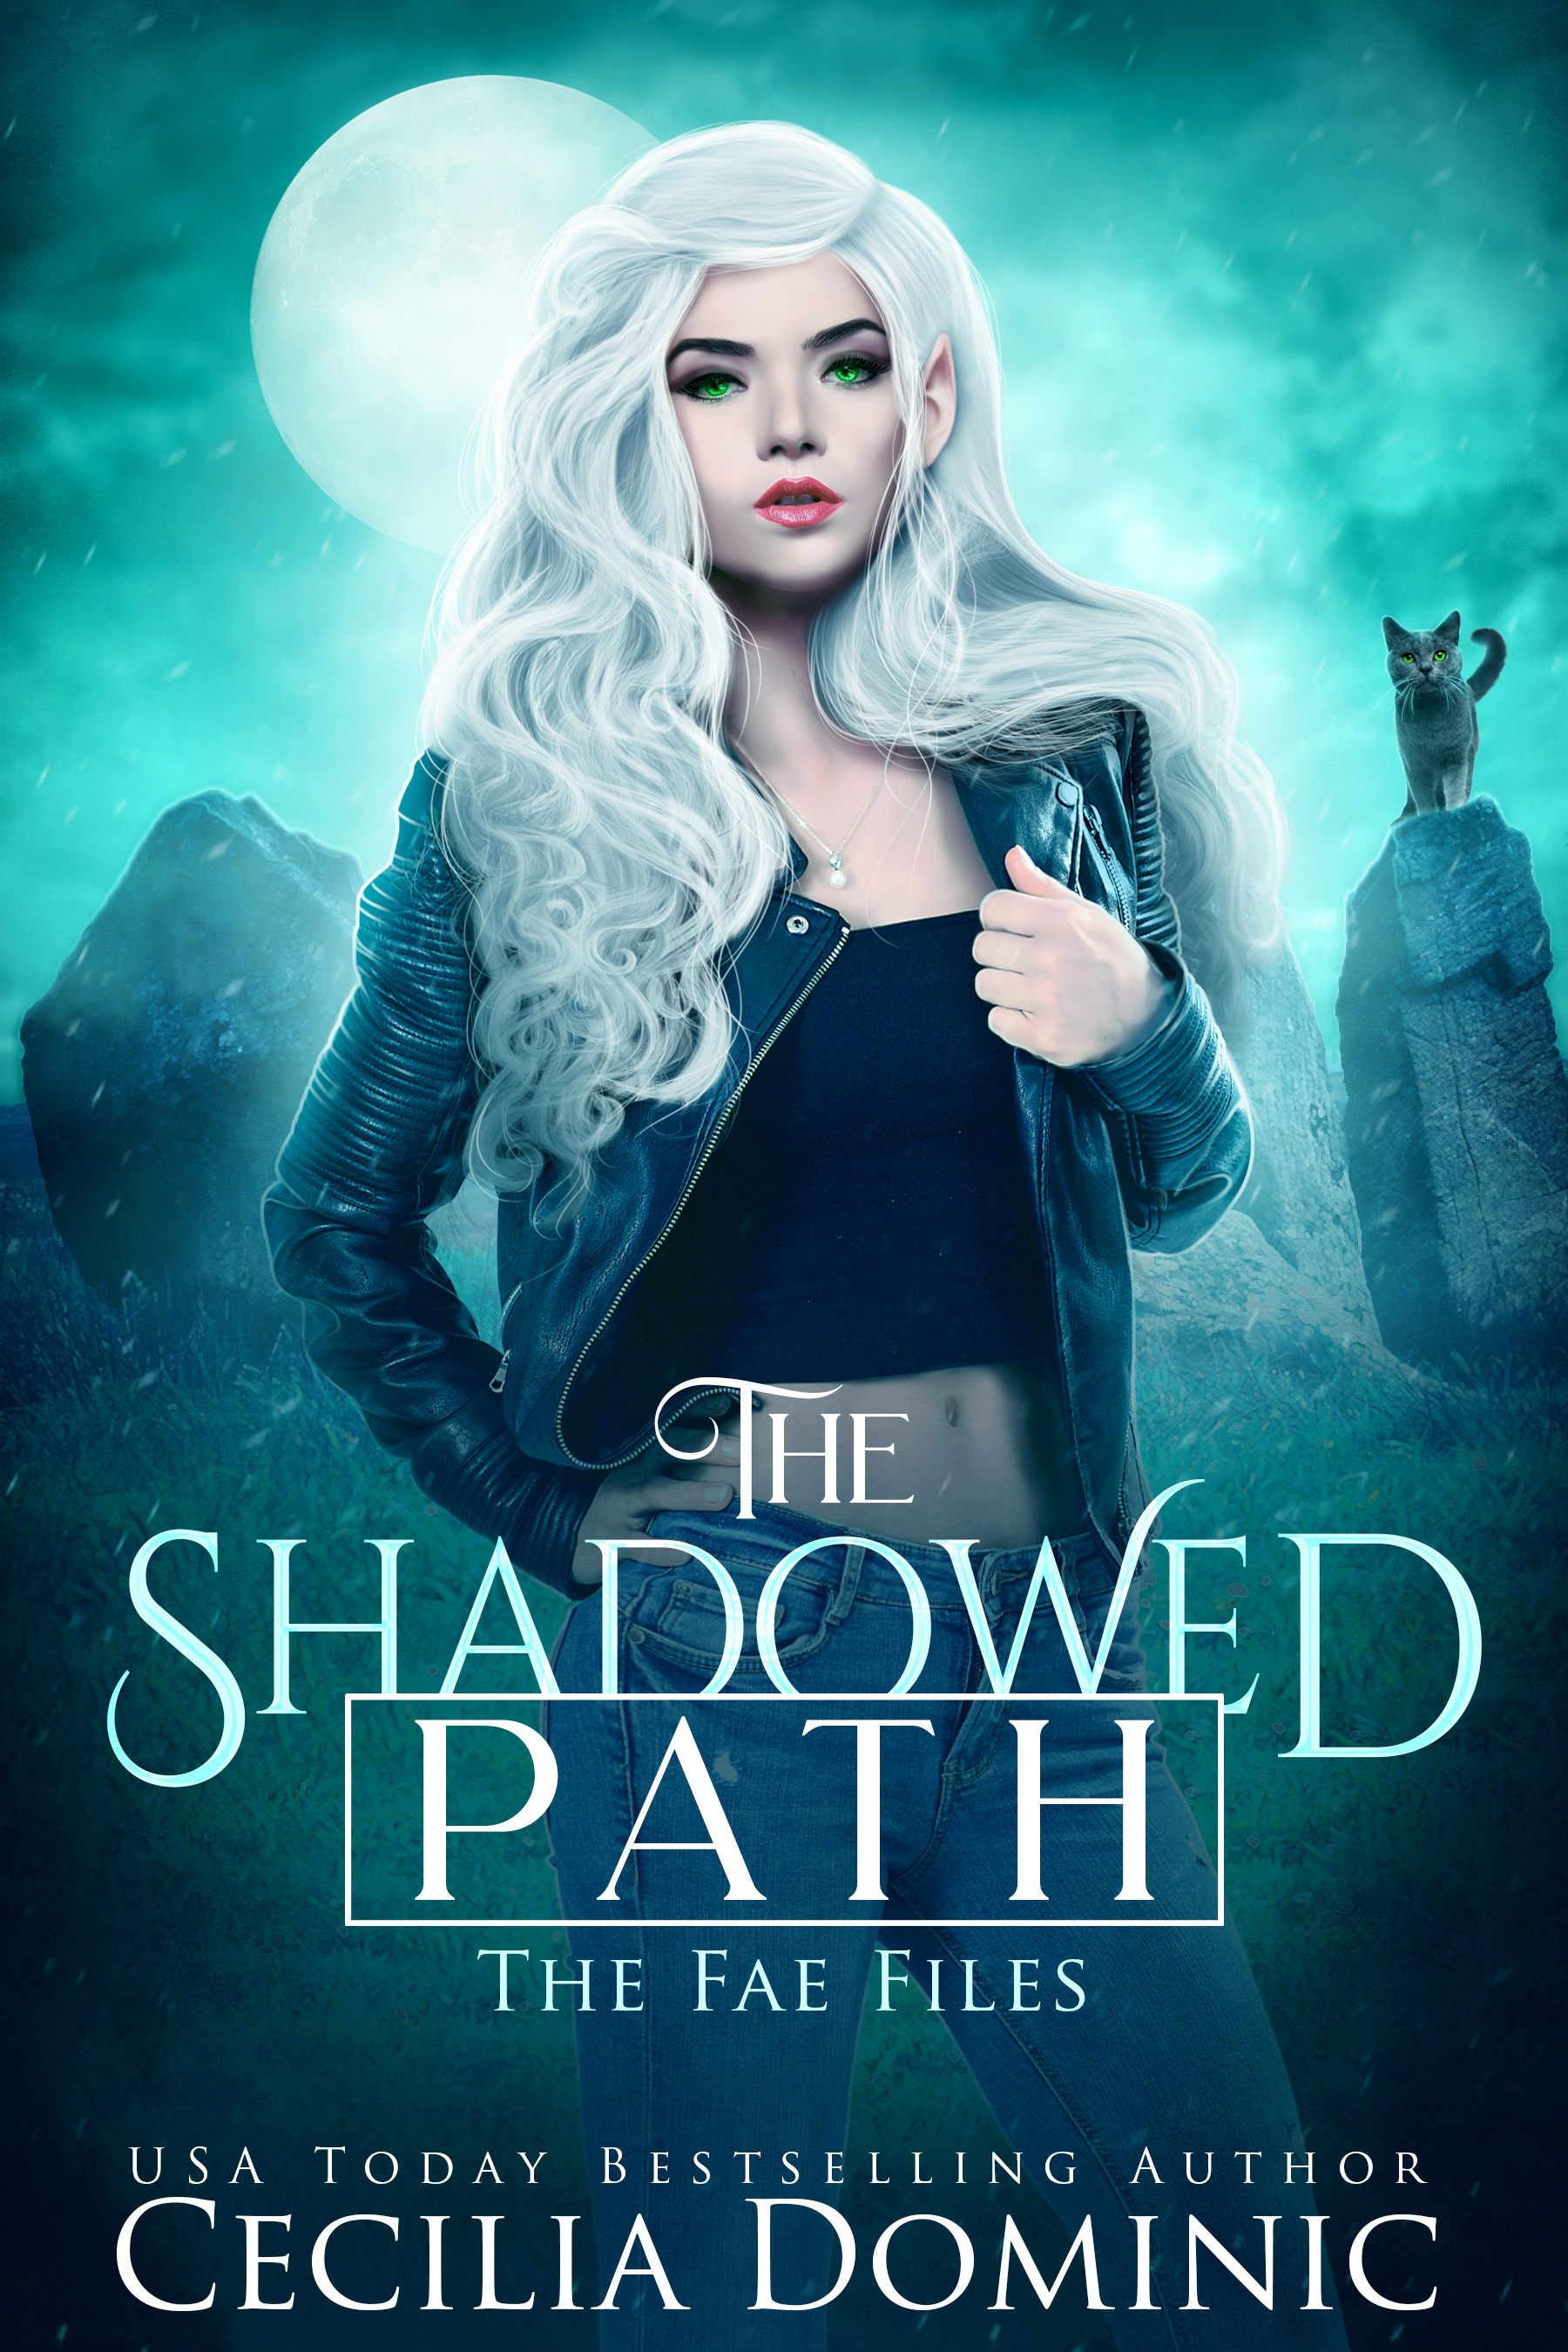 The Shadowed Path